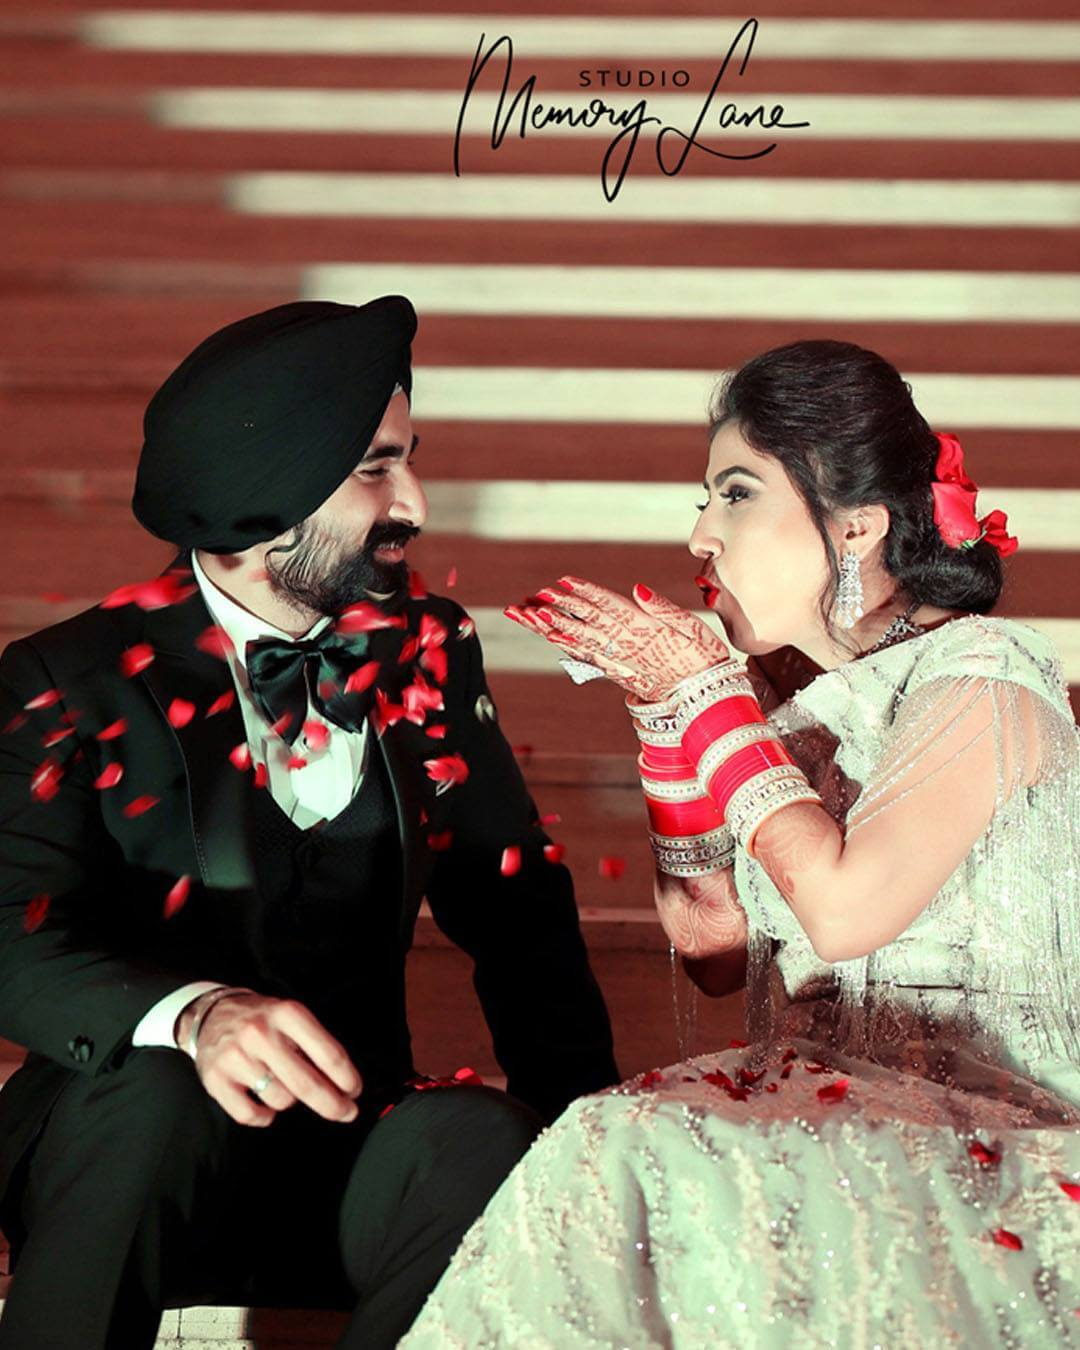 Candid wedding photographers in Mohali | Happily ever after!